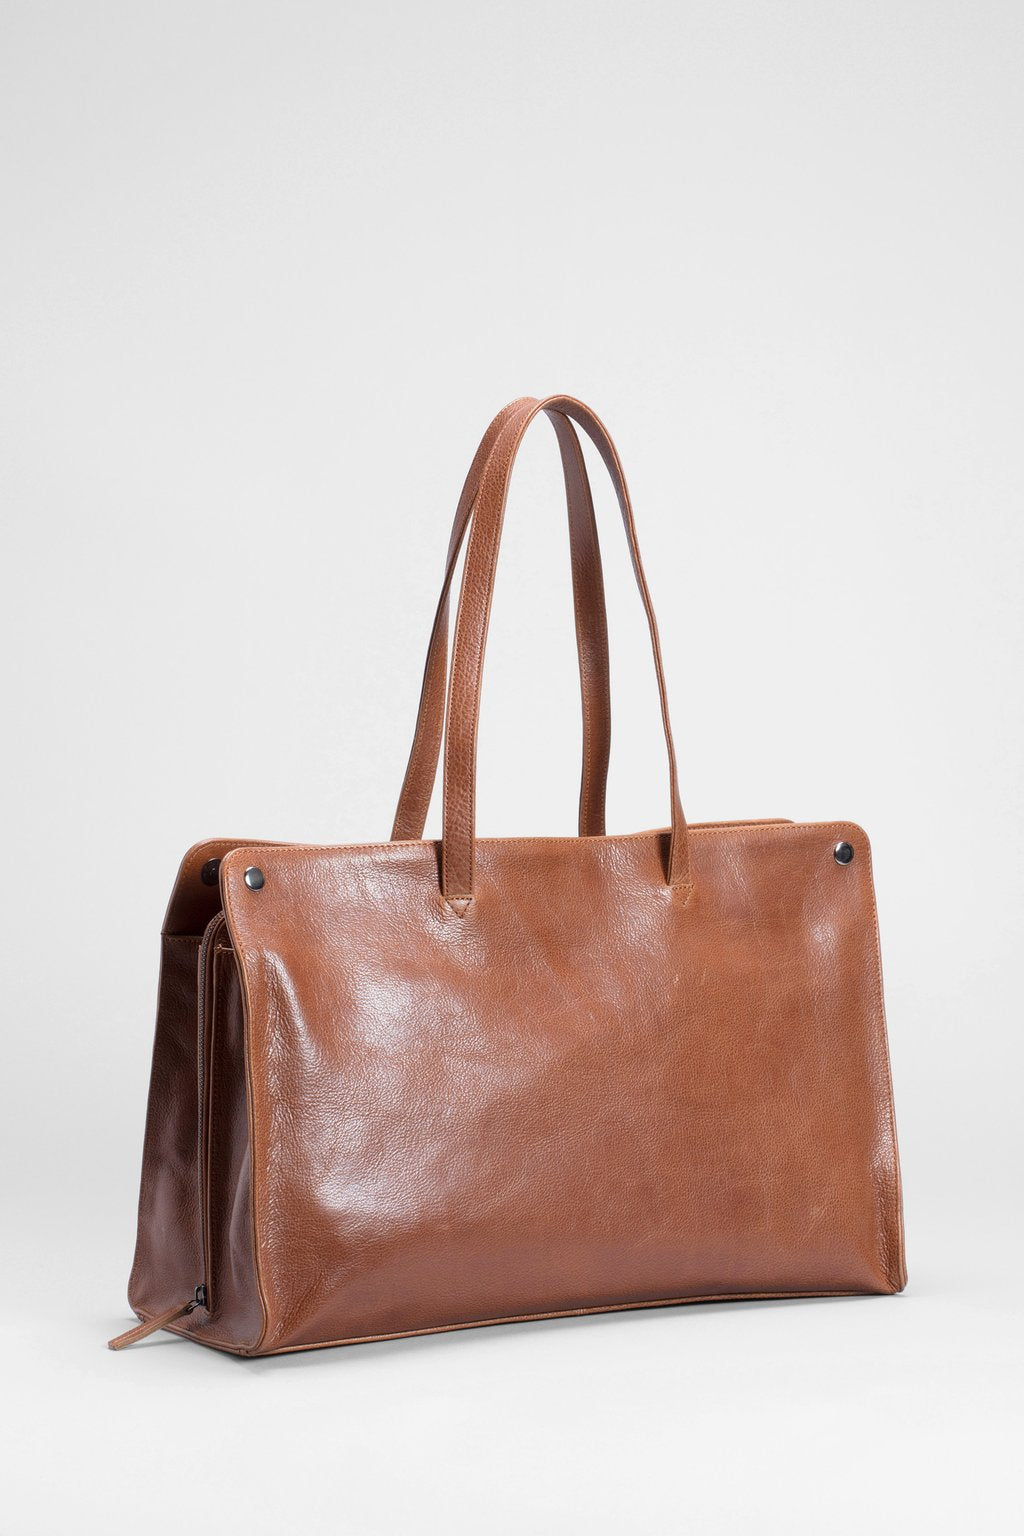 ELK The Label - Edda Large Bag online at PAYA boutique